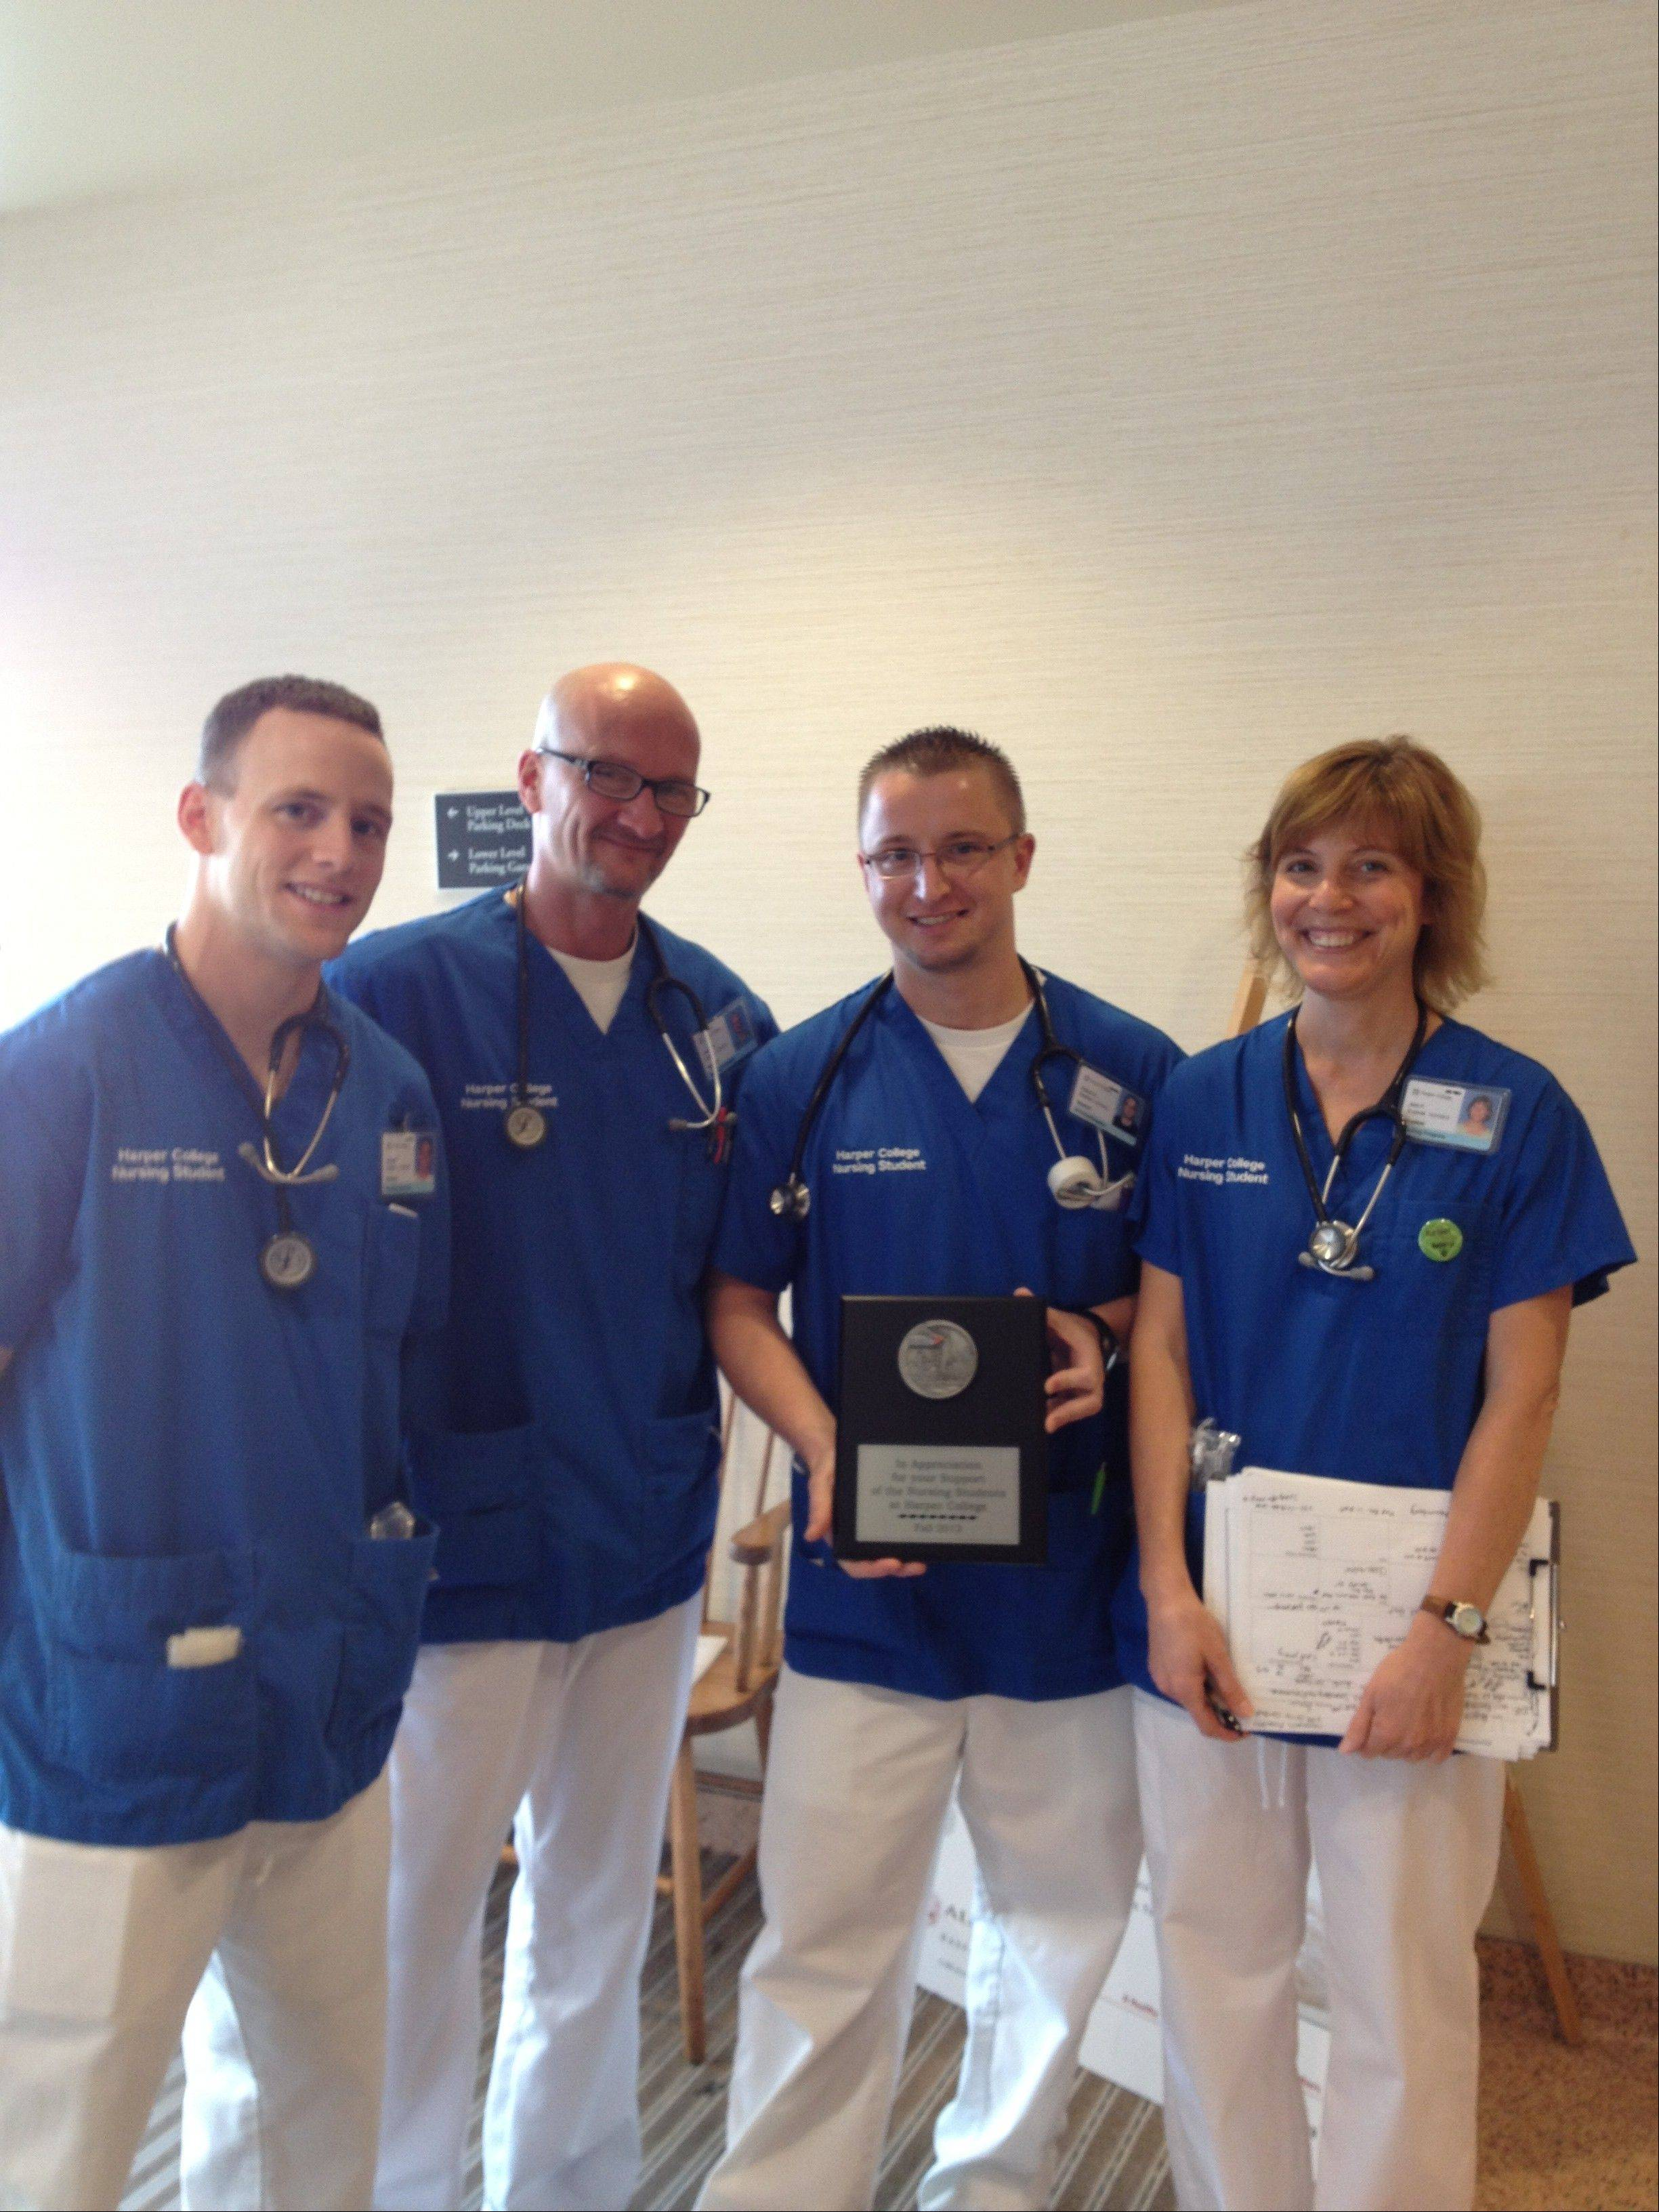 Nursing students, from left, Joseph Brisbois, Jim Owen, Patryk Gusciora and Ann Portmann pose with the plaque that Gusciora had made from his Chicago Marathon medal in honor of the nurses at Northwest Oncology at St. Alexius Medical Center. All four will graduate in December.